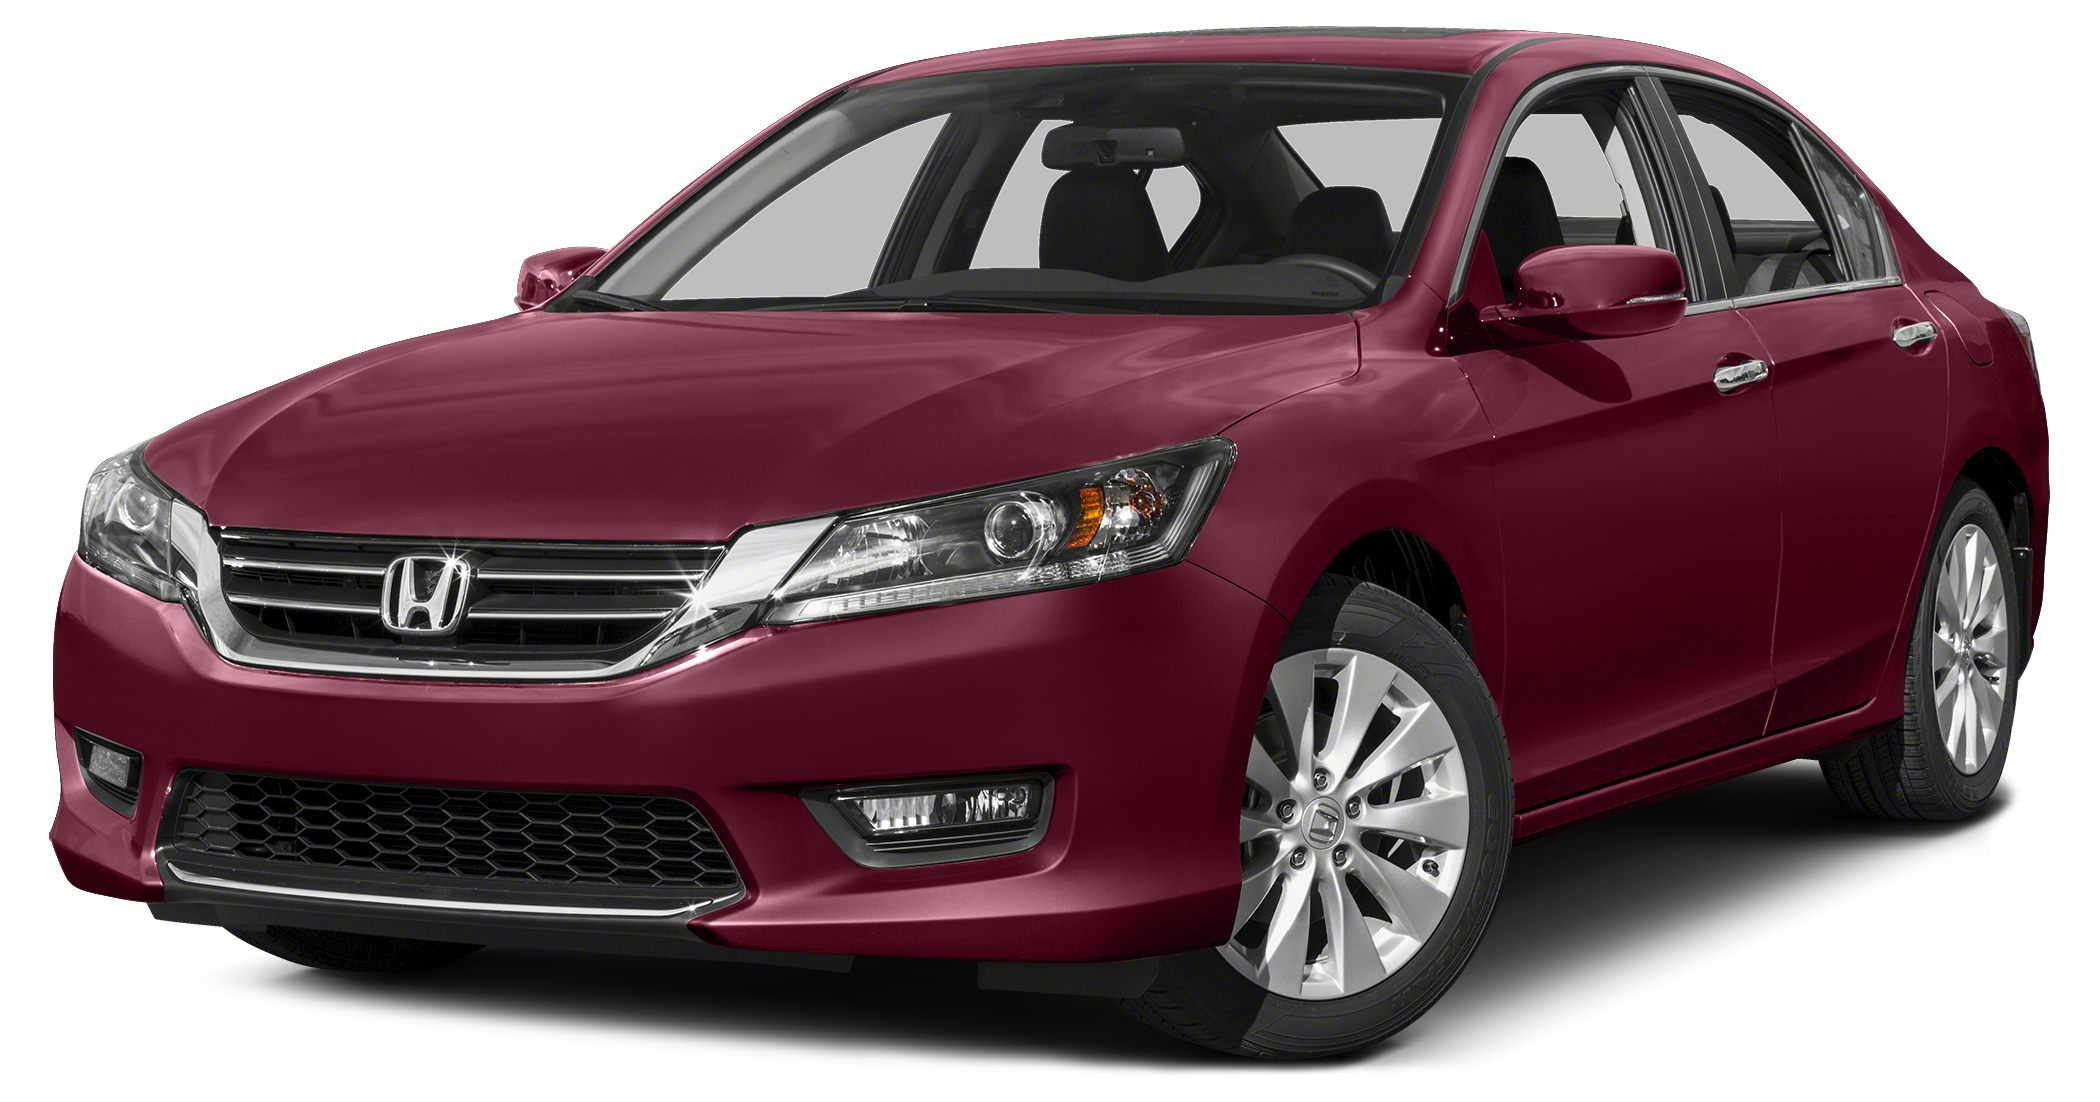 2015 Honda Accord EX-L This 2015 Honda Accord EX-L is a local one owner trade in on a new Mercede